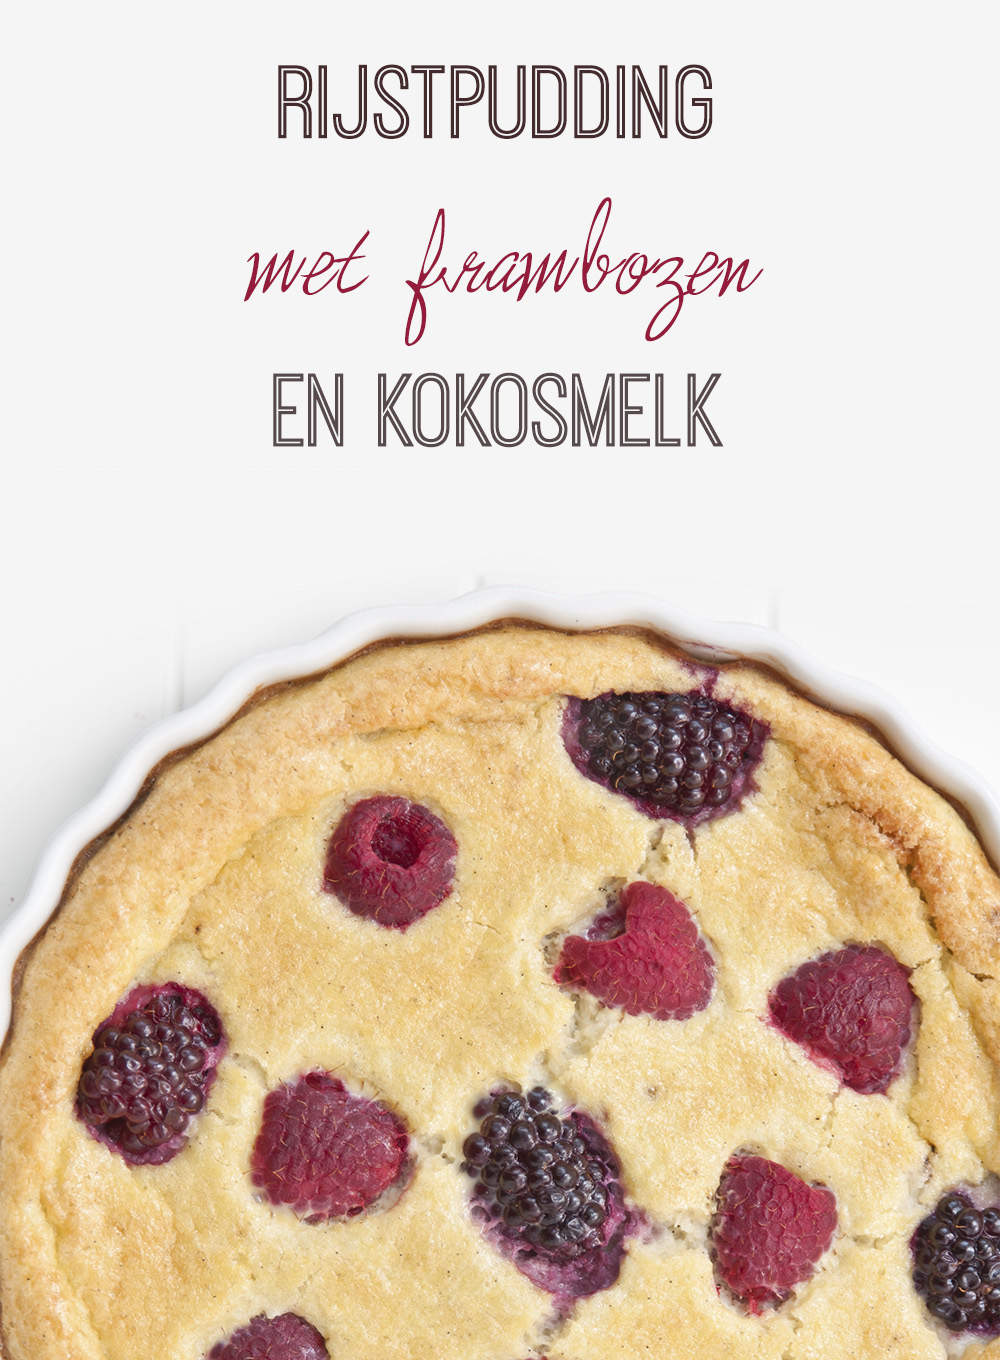 Empty the fridge - Rijstpudding met frambozen en kokosmelk